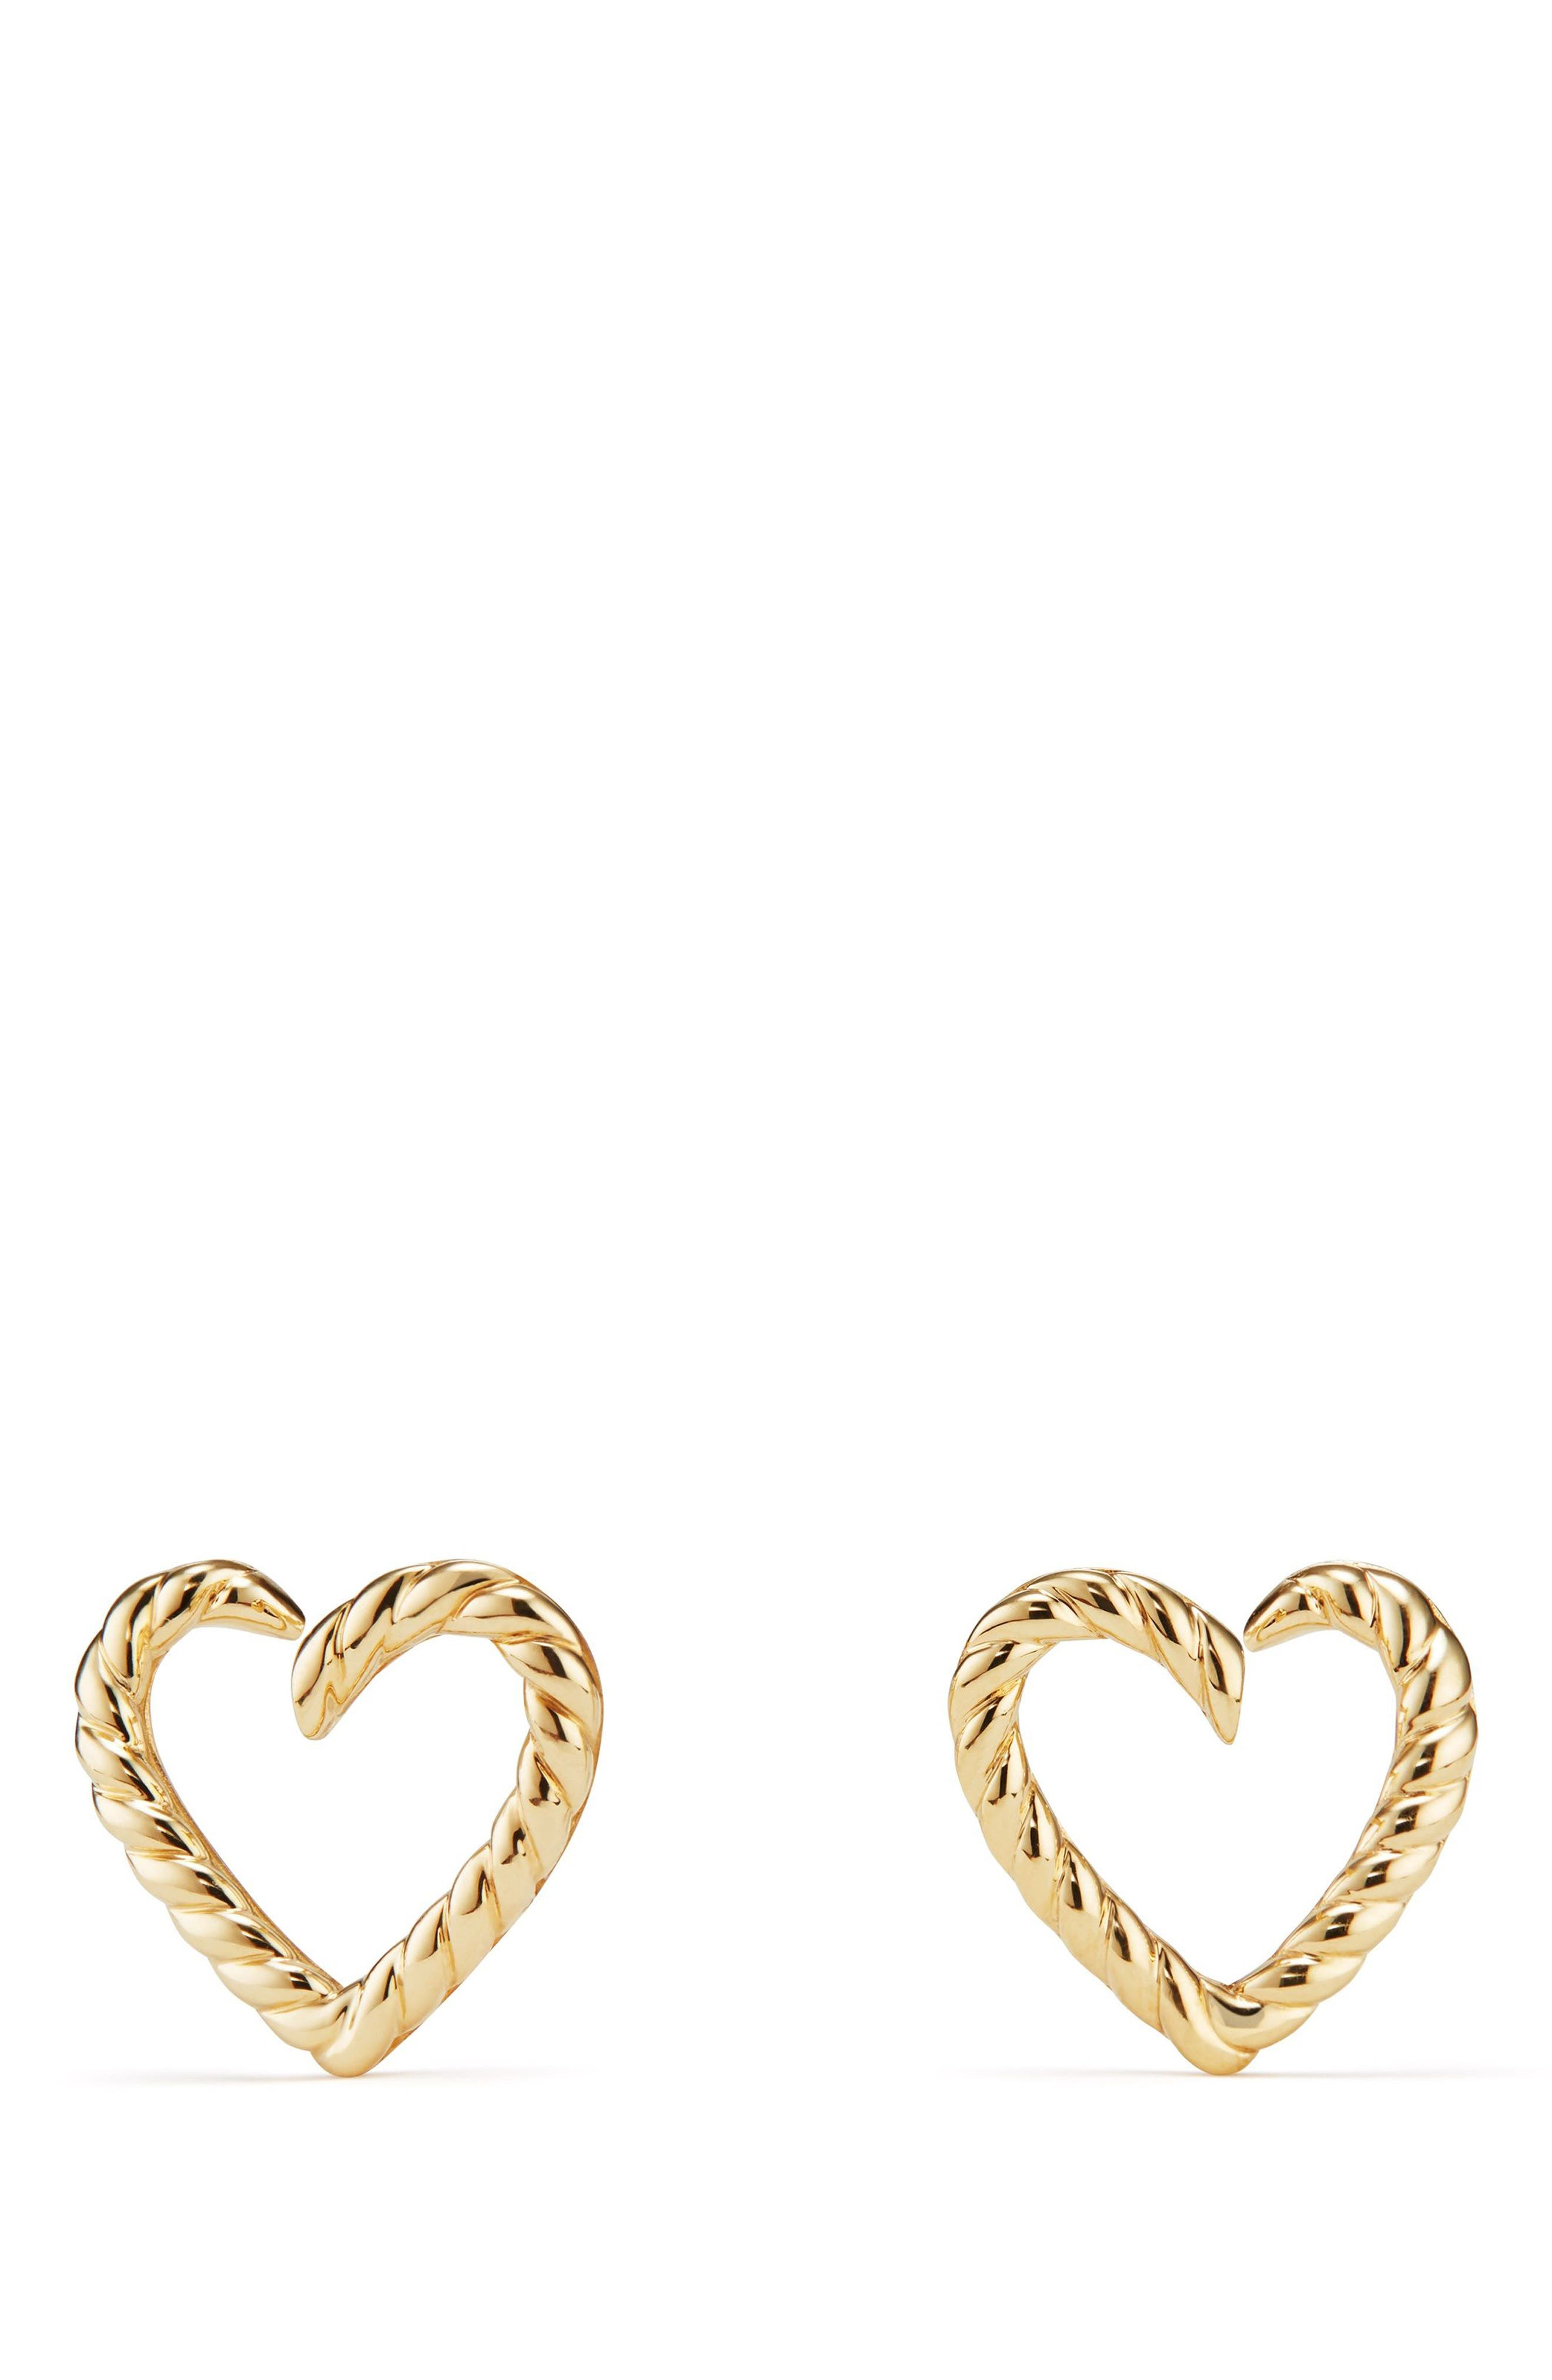 Cable Heart Earring in 18K Gold,                             Main thumbnail 1, color,                             GOLD